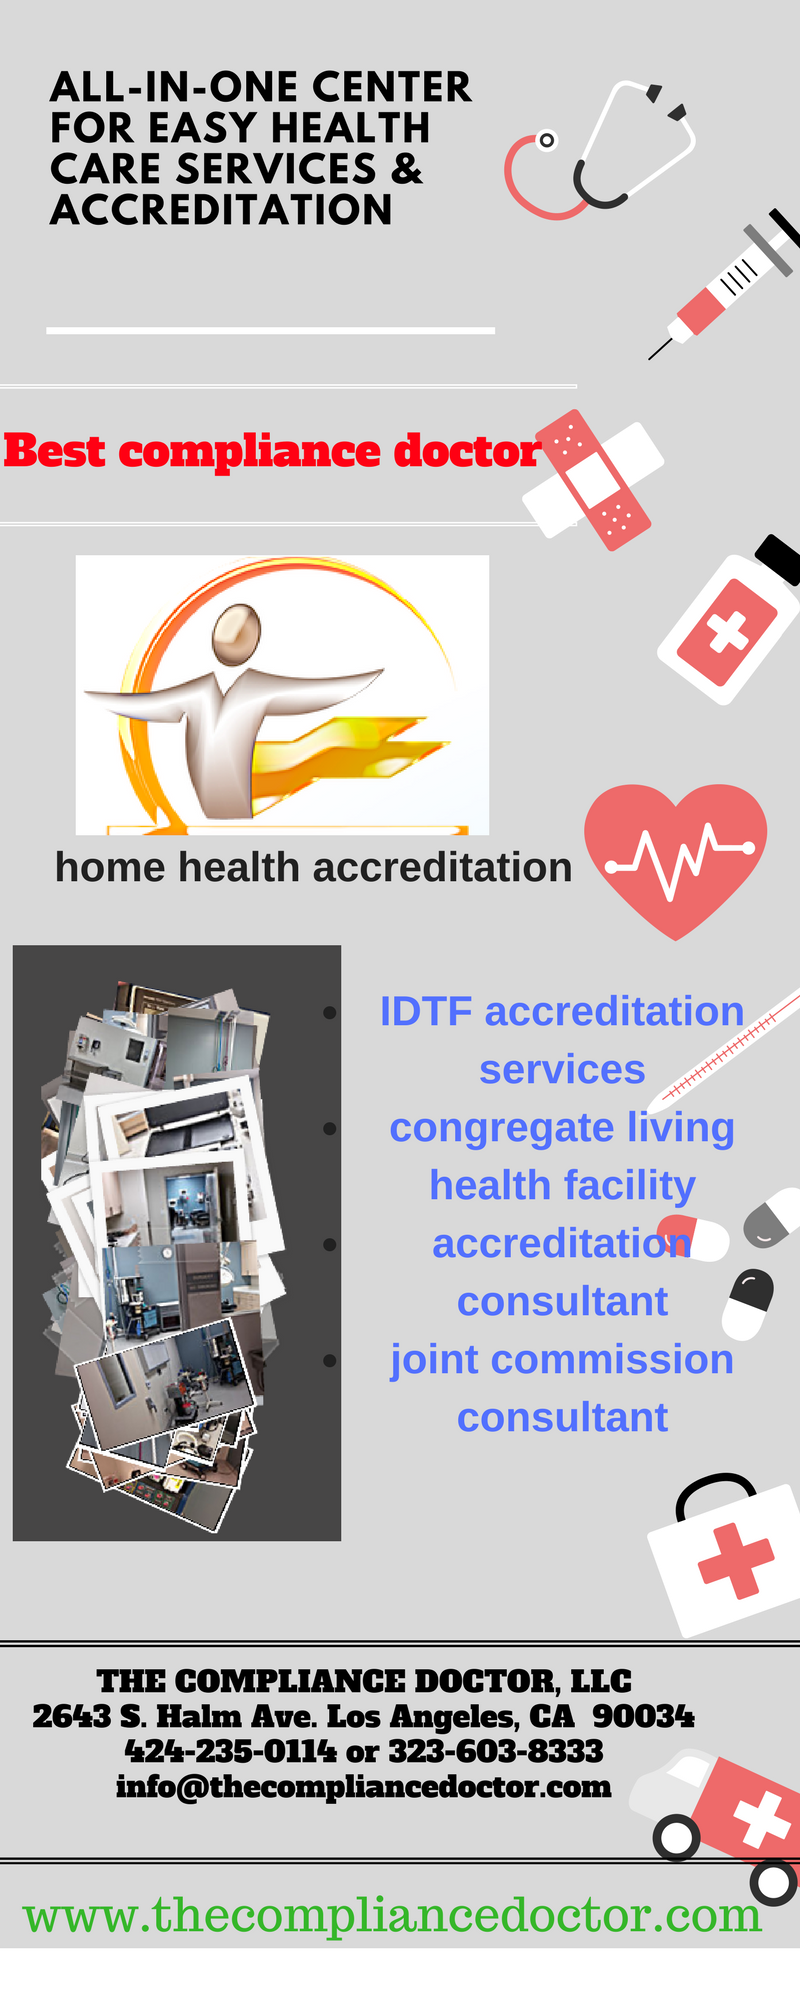 The compliance doctor is your accredition expert wherein the compliance doctor is your accredition expert wherein experienced consultants can assist you getting accreditation licensing and medicare certification xflitez Choice Image